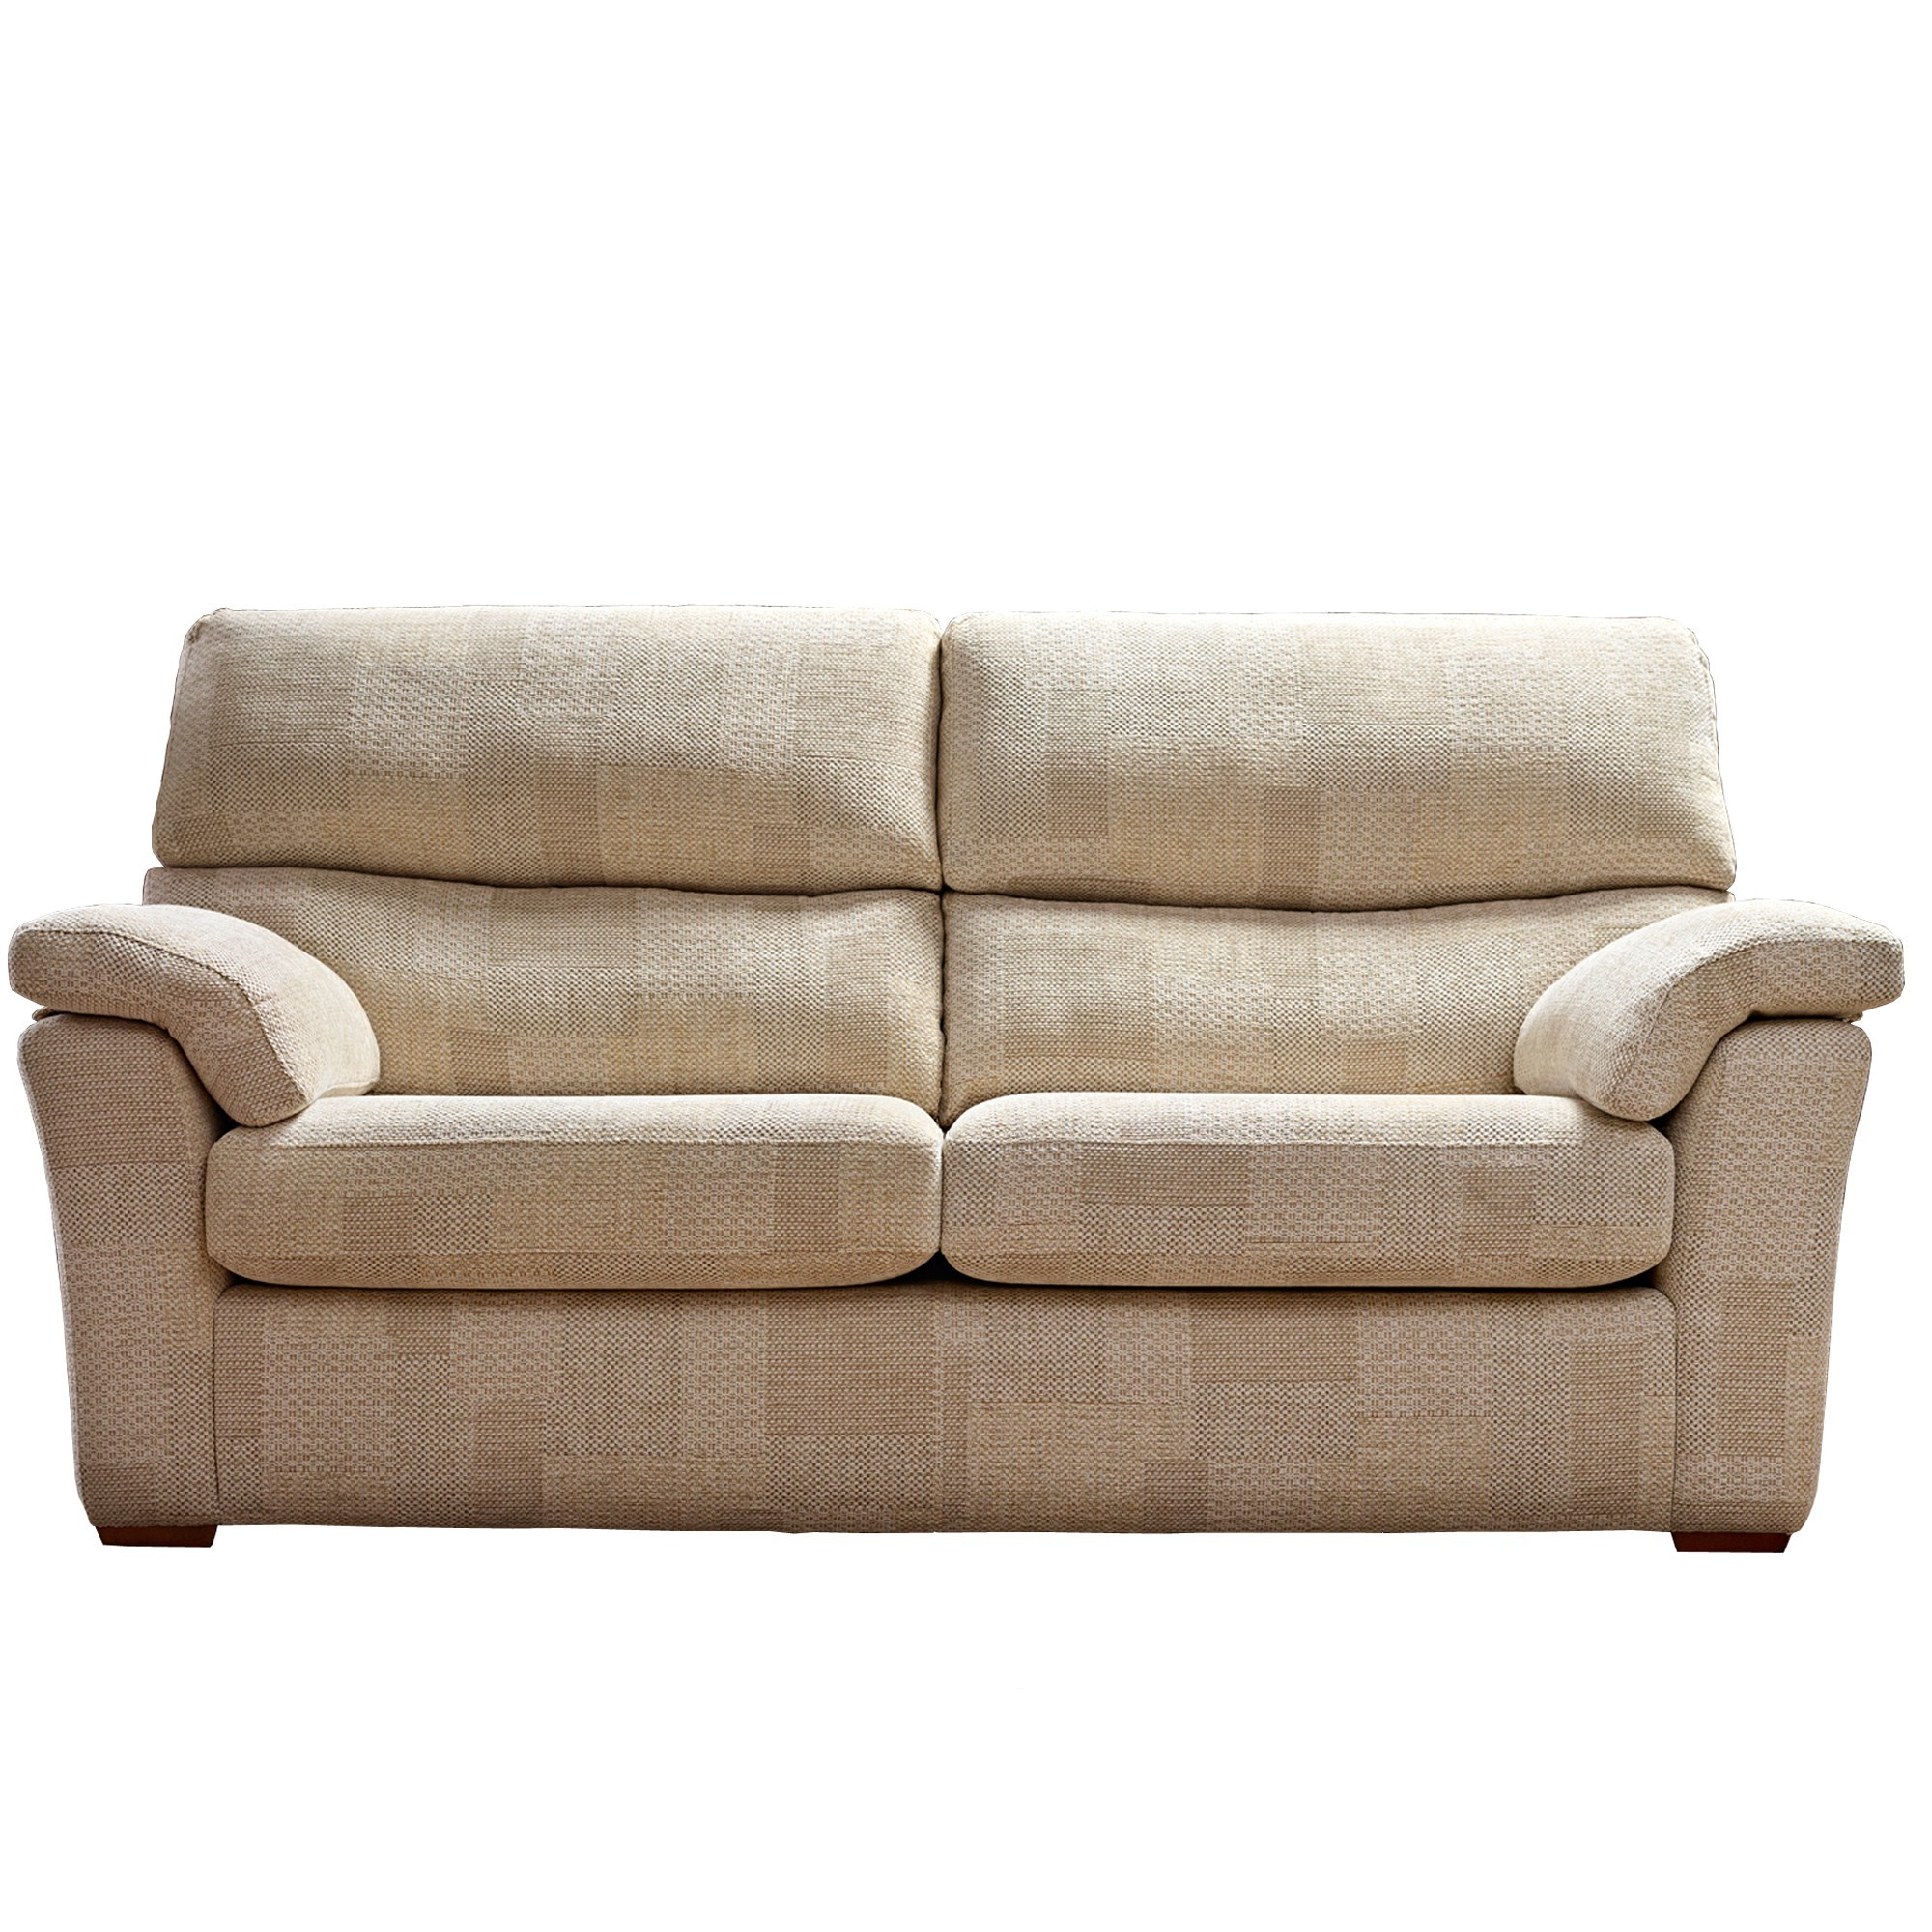 Big Sofa York Hersteller Cookes Collection York 3 Seater Sofa Fabric Sofas